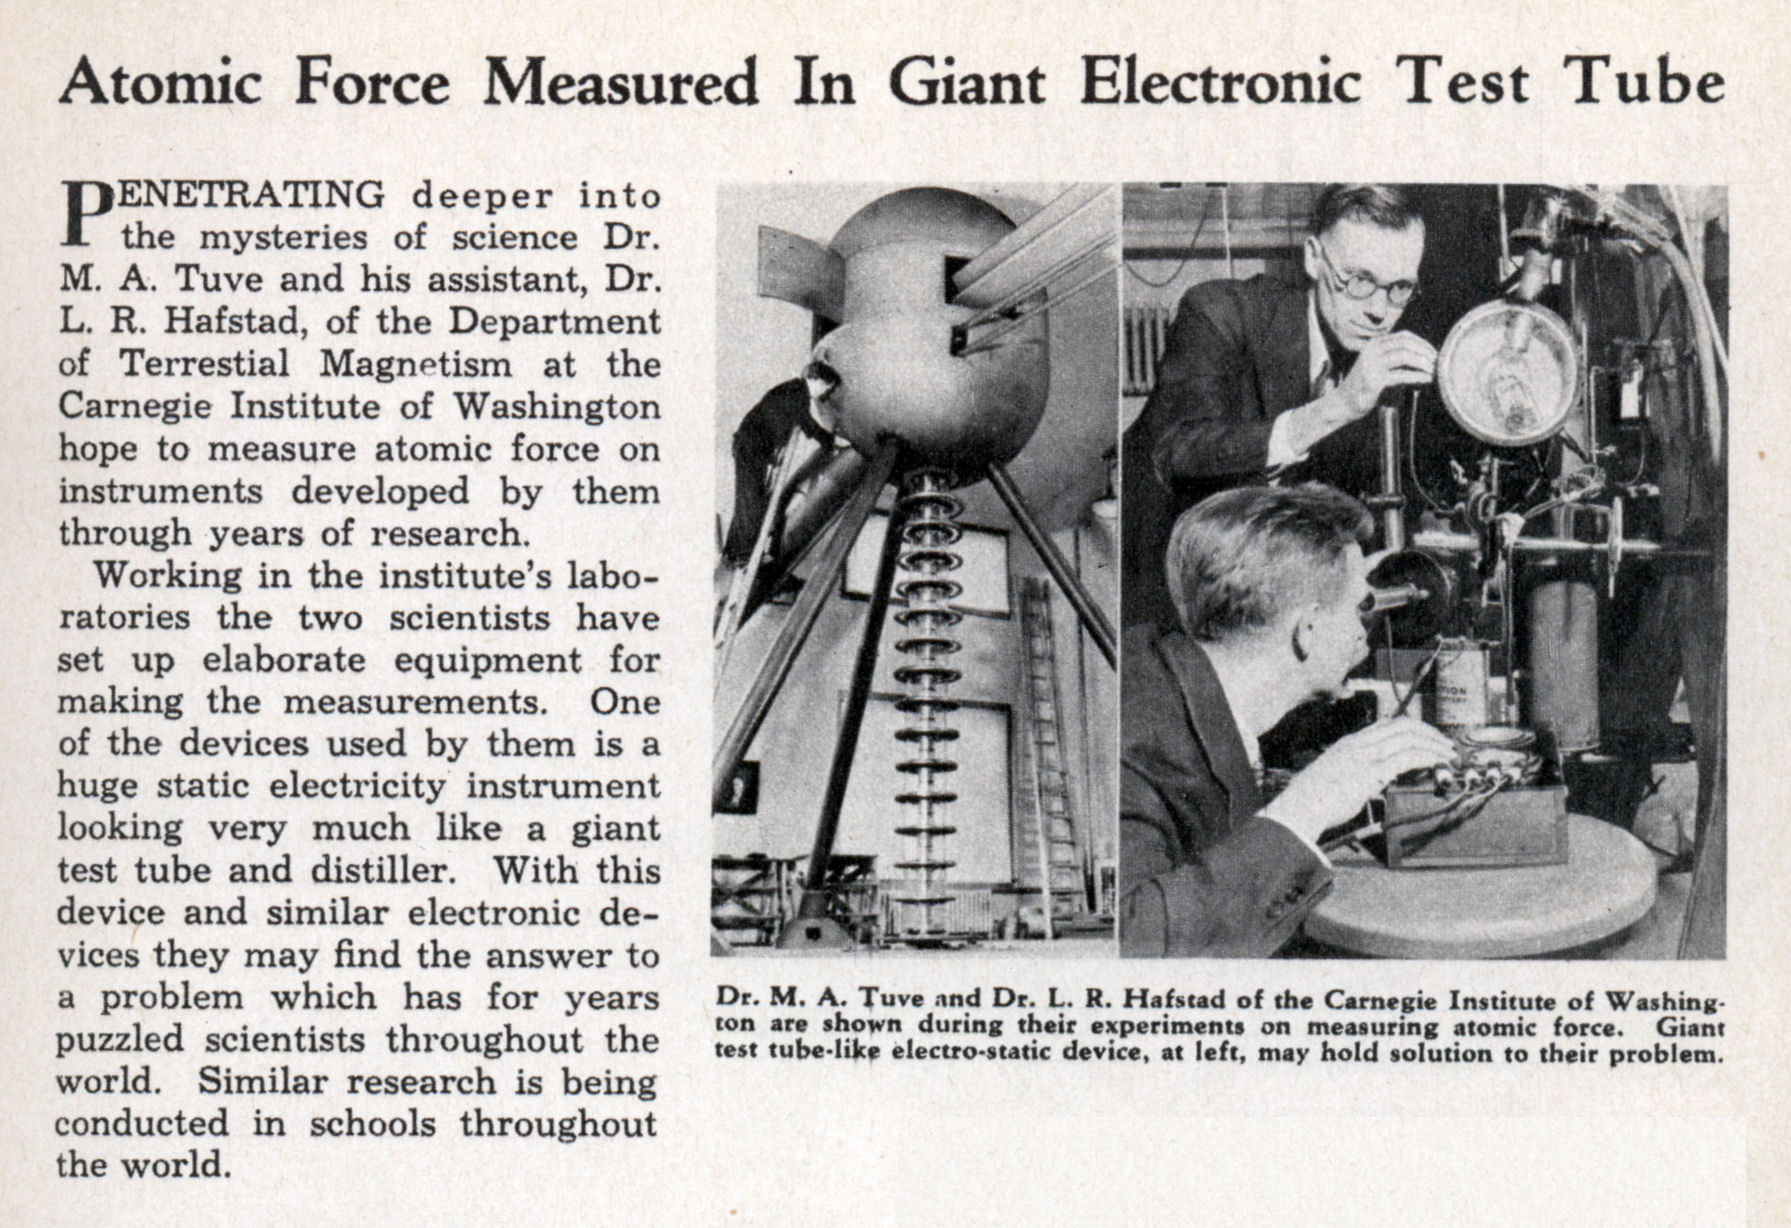 Atomic Force Measured In Giant Electronic Test Tube Jun 1936